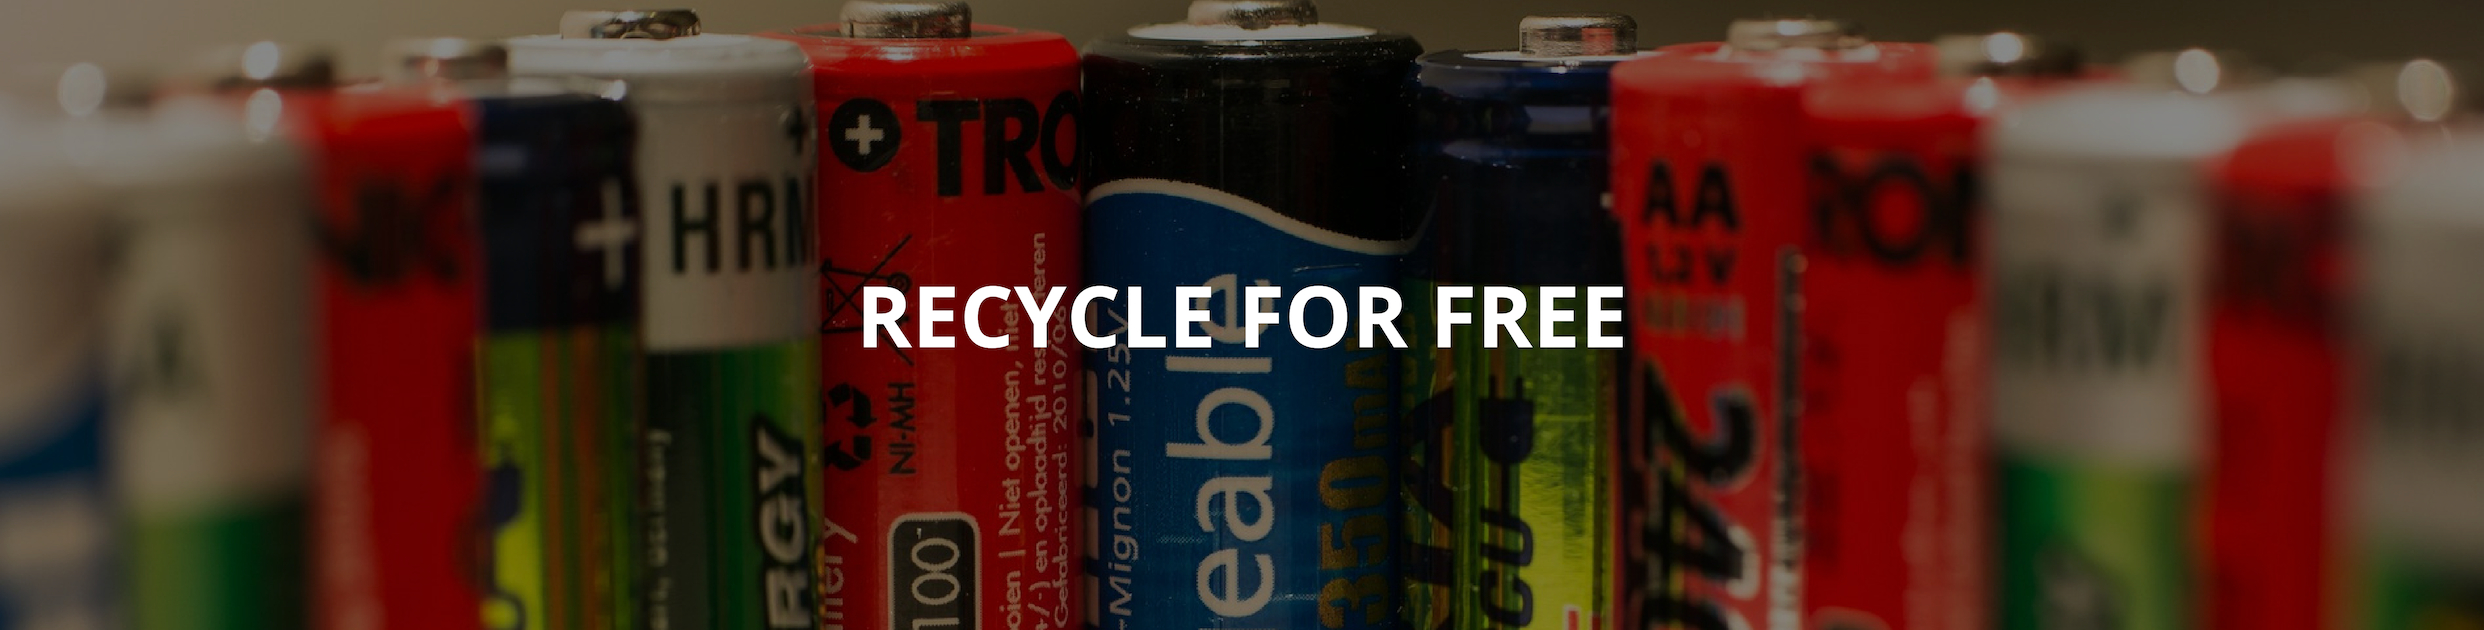 recycle for free